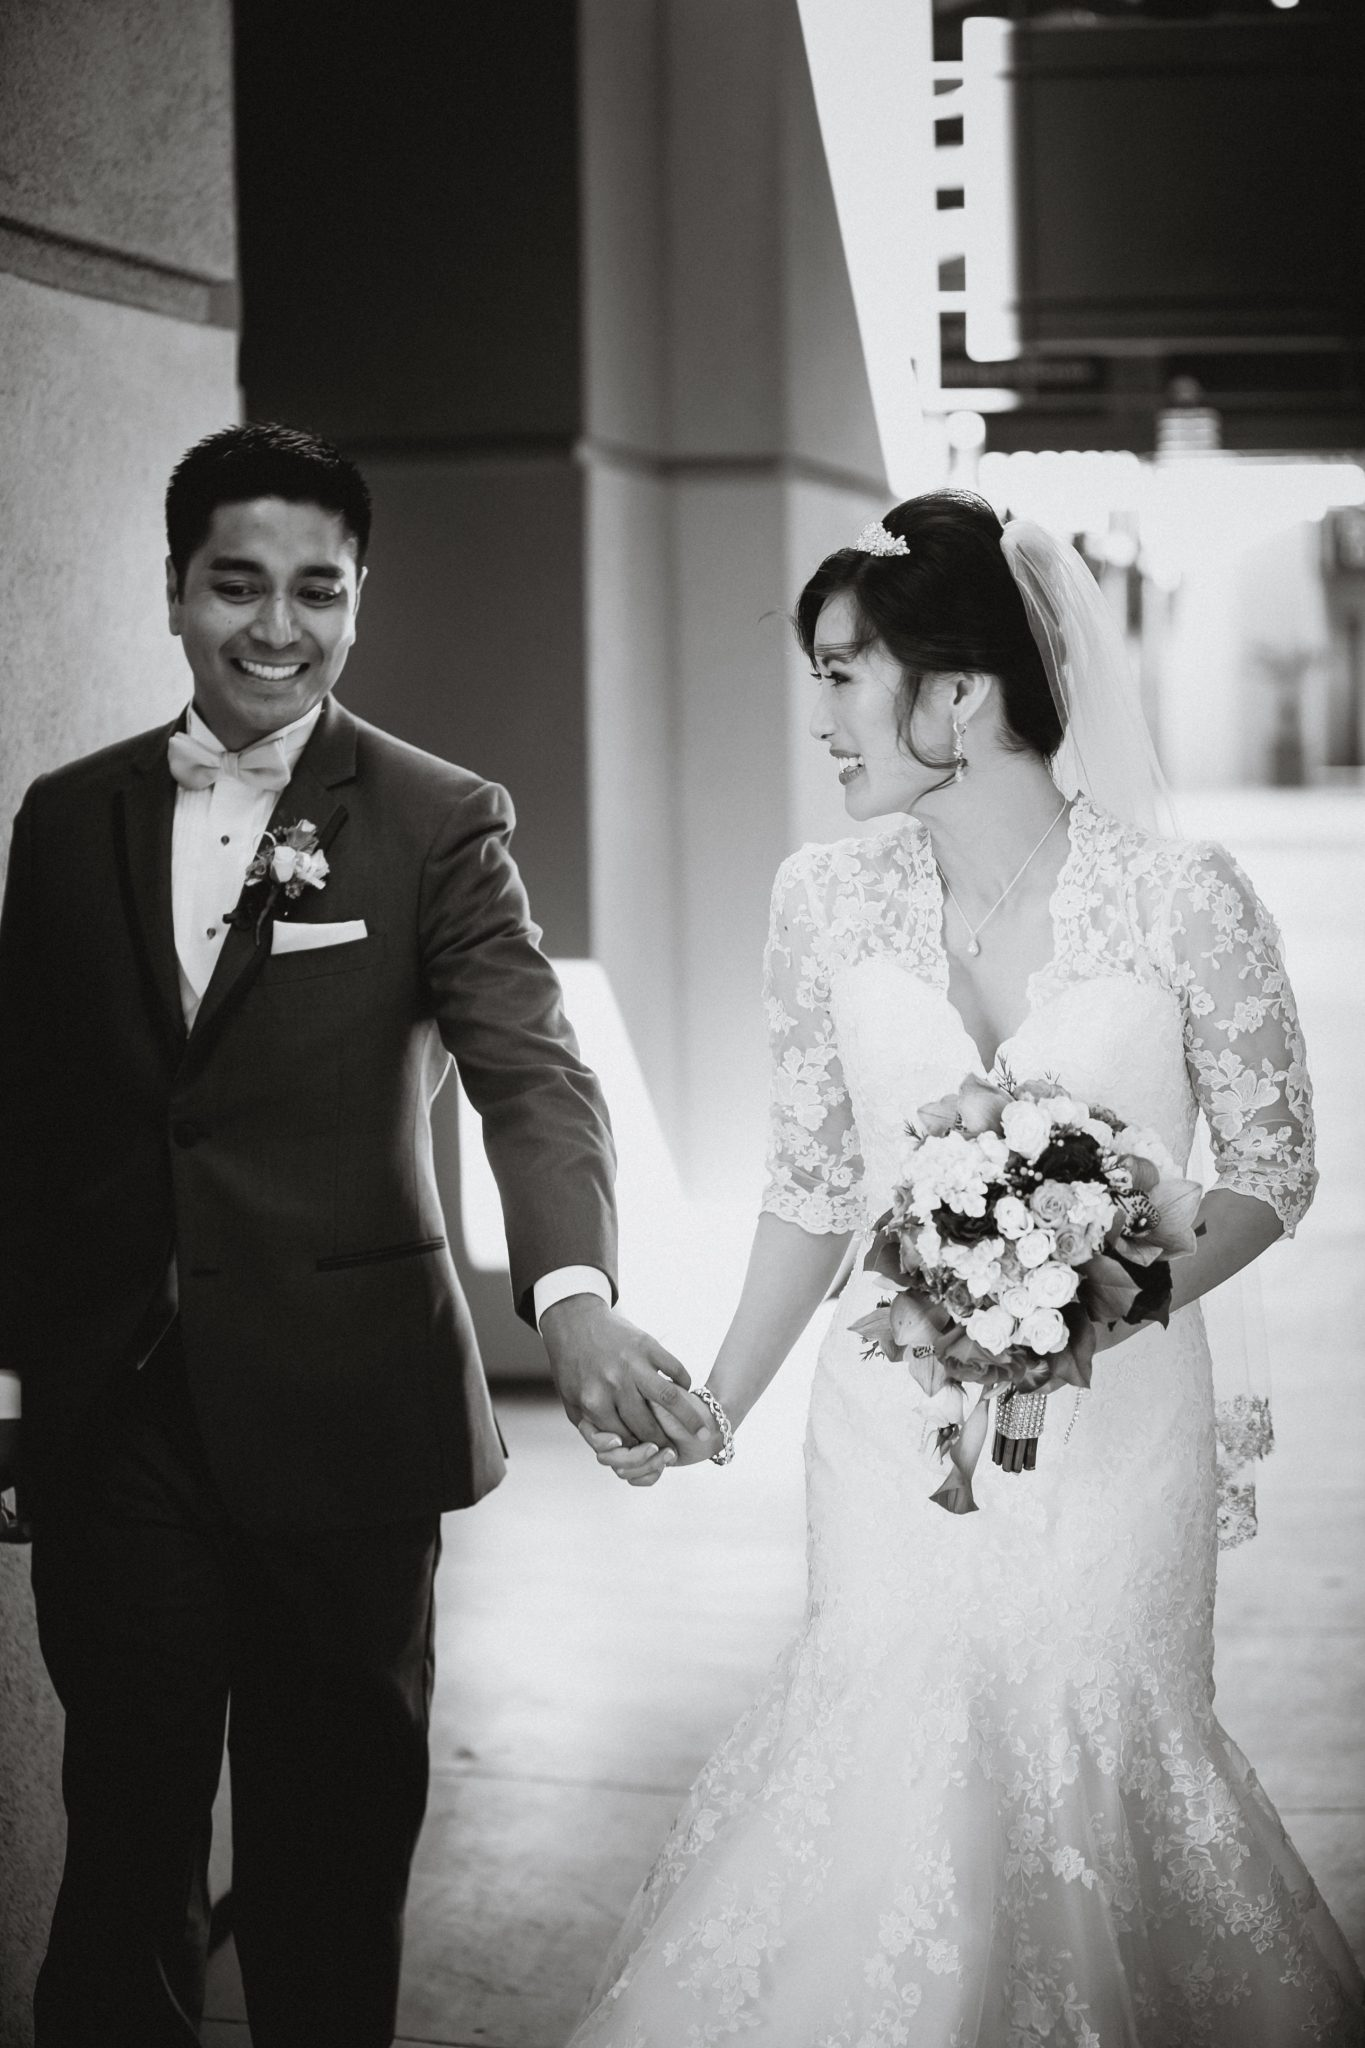 Candid black and white image of the couple walking